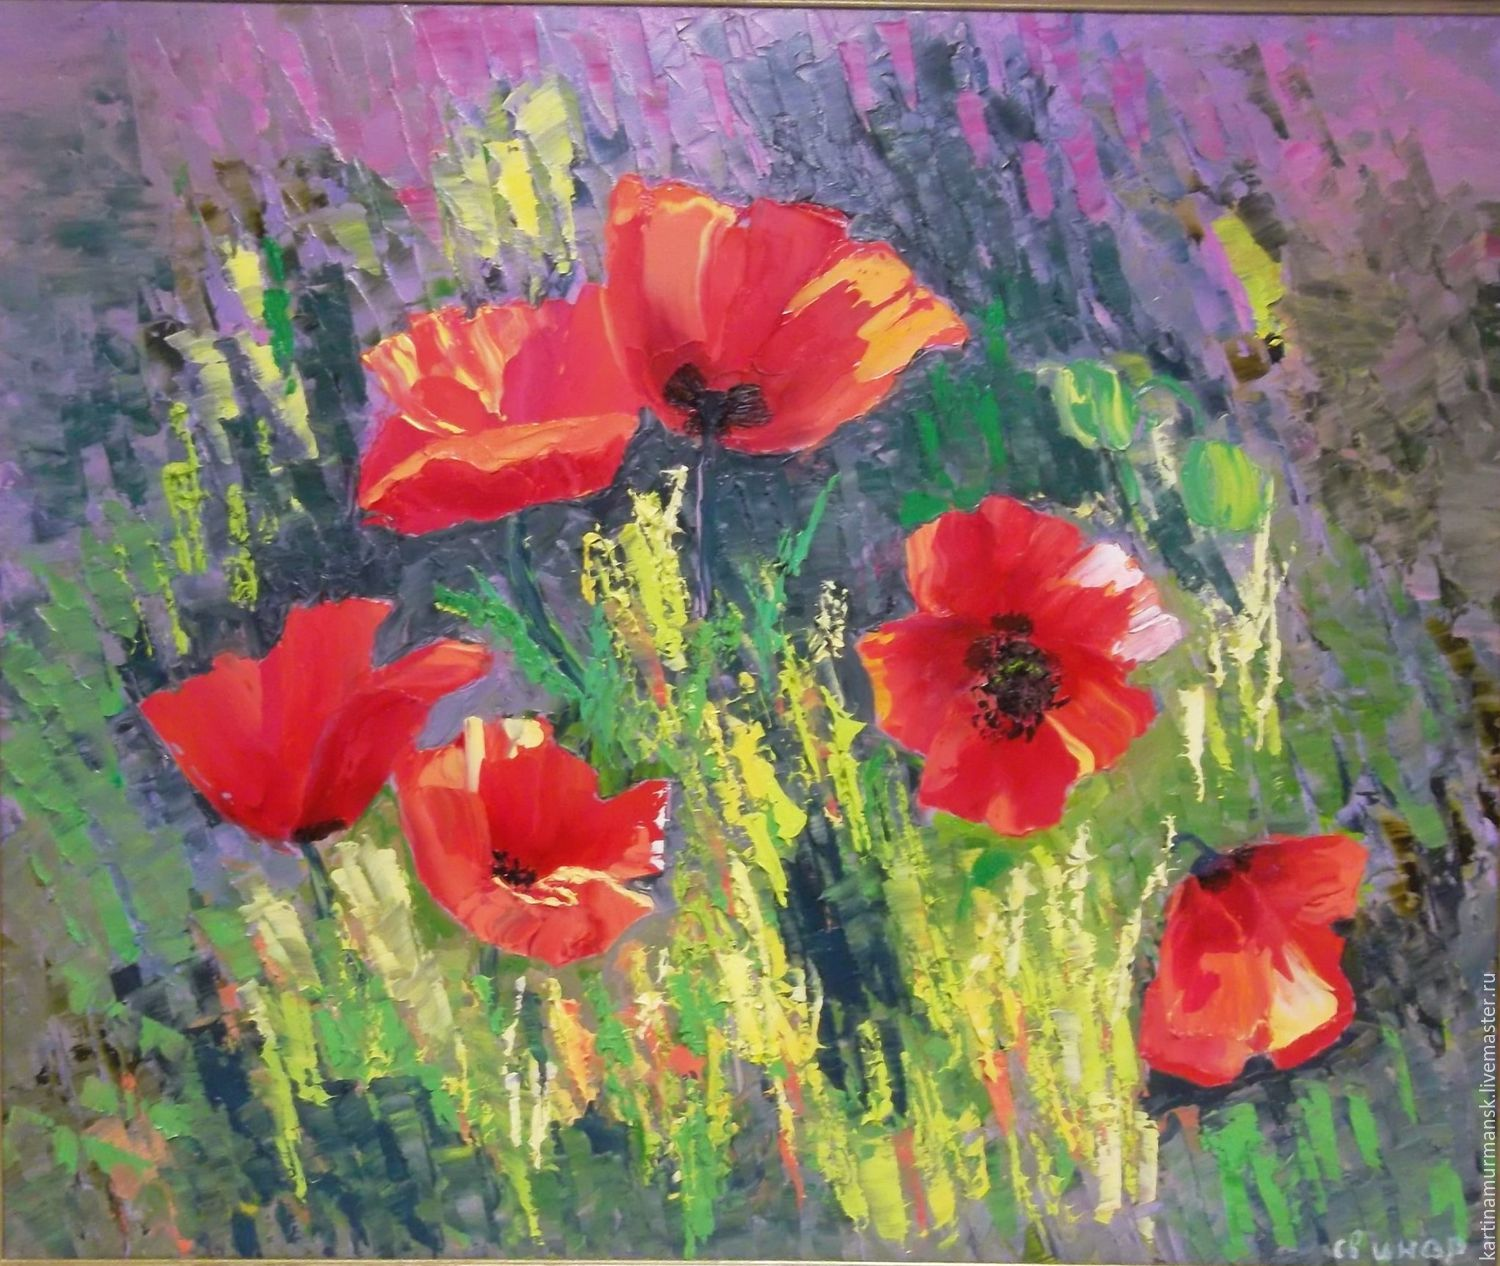 Oil painting flowers 50/60 'Poppies in the grass', Pictures, Murmansk,  Фото №1